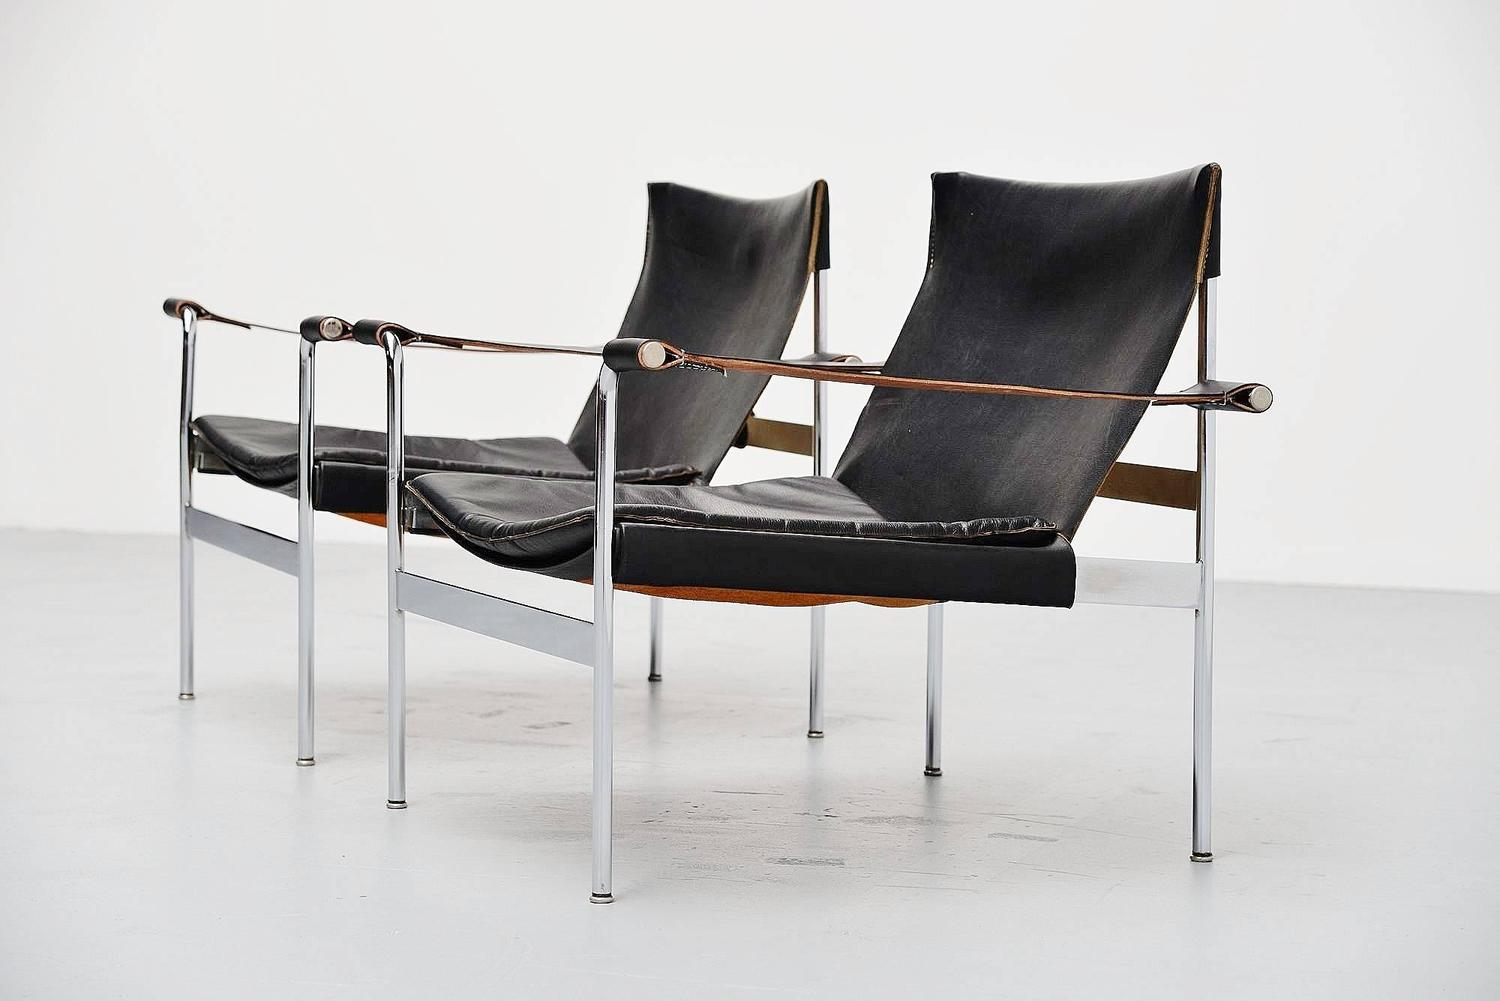 hans konecke tecta lounge chairs germany 1954 for sale at 1stdibs. Black Bedroom Furniture Sets. Home Design Ideas